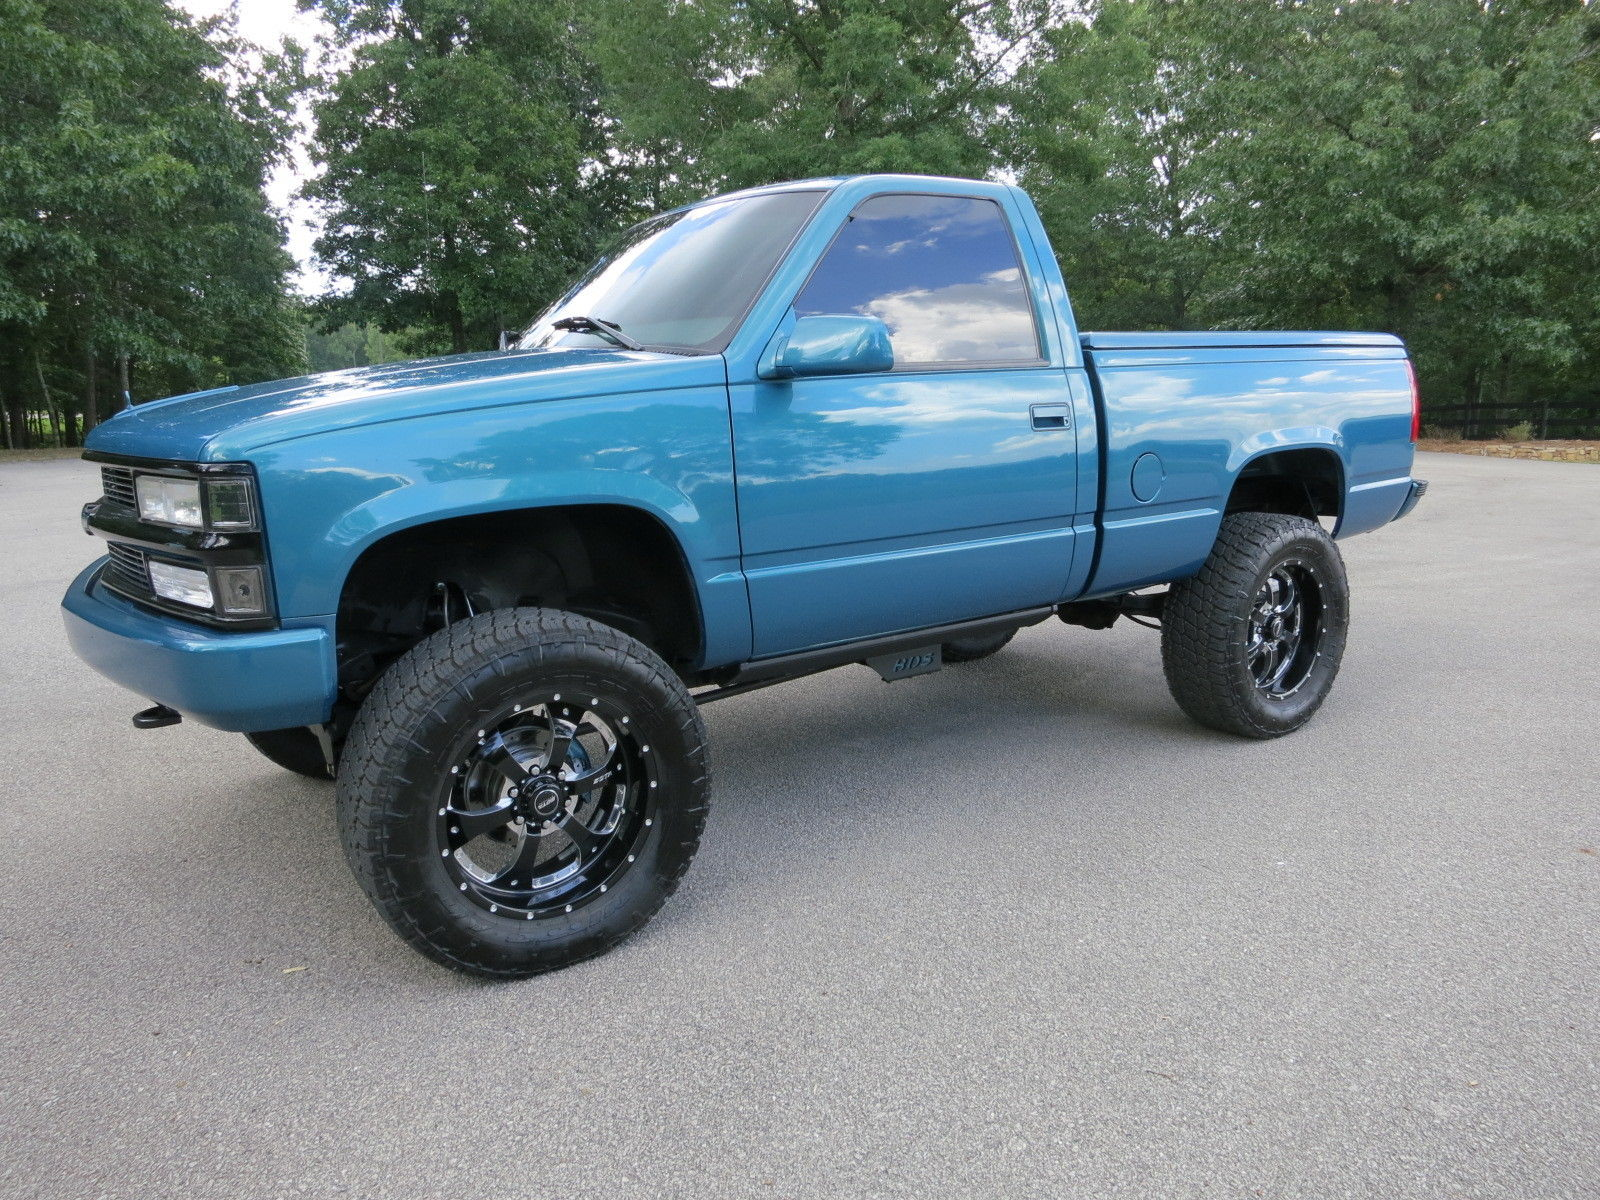 1997 Chevy Silverado For Sale >> Completely Tricked Out 1997 Chevrolet Silverado 1500 Lifted